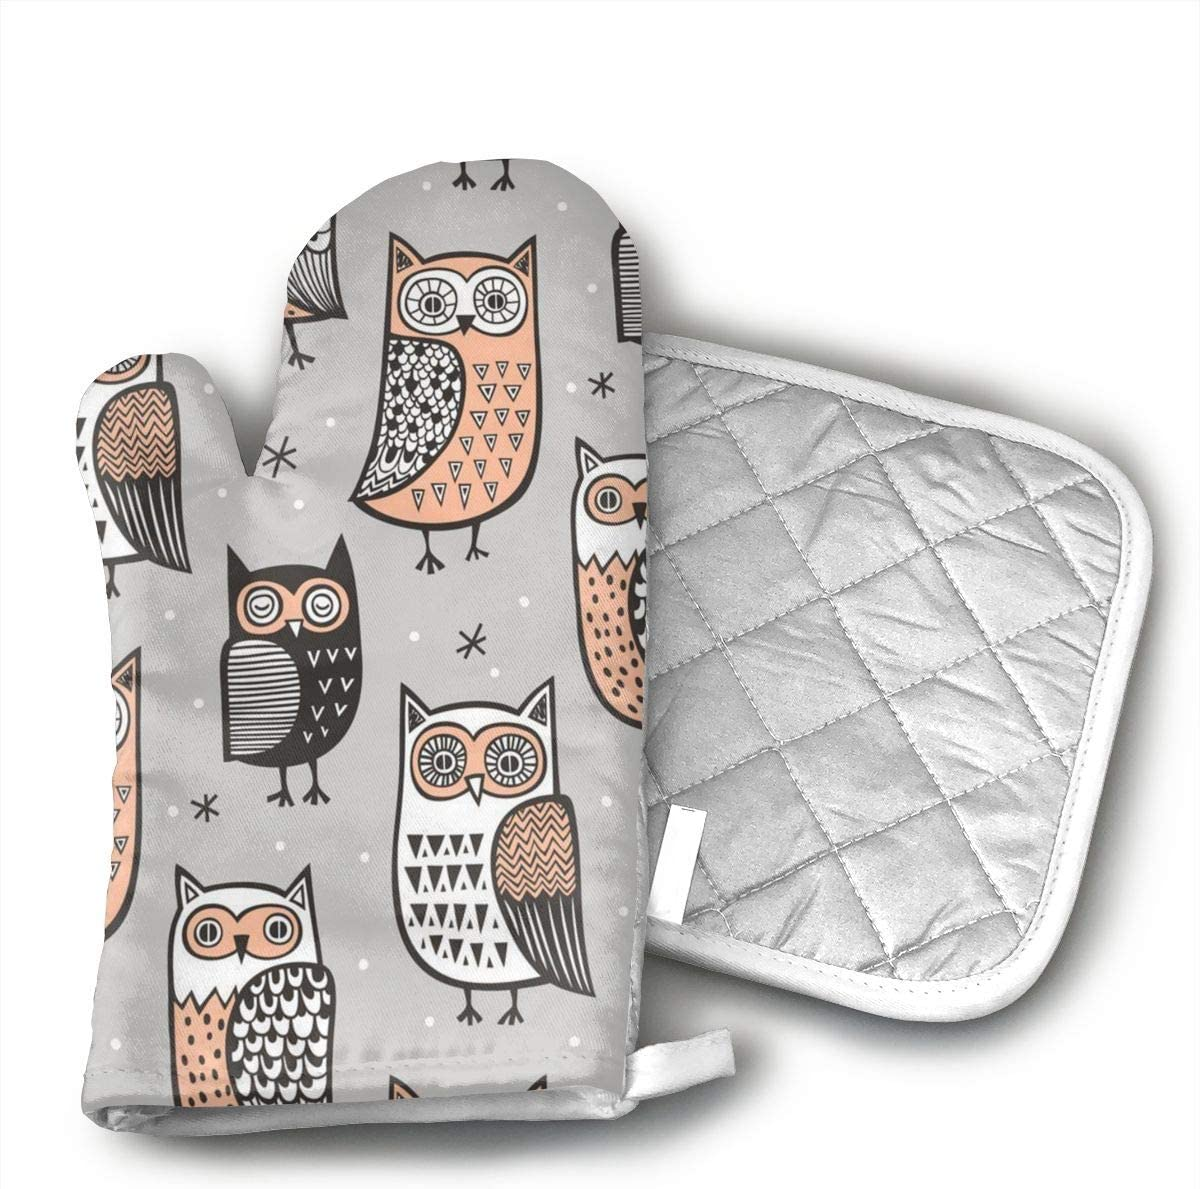 Wiqo9 Owls Oven Mitts and Pot Holders Kitchen Mitten Cooking Gloves,Cooking, Baking, BBQ.